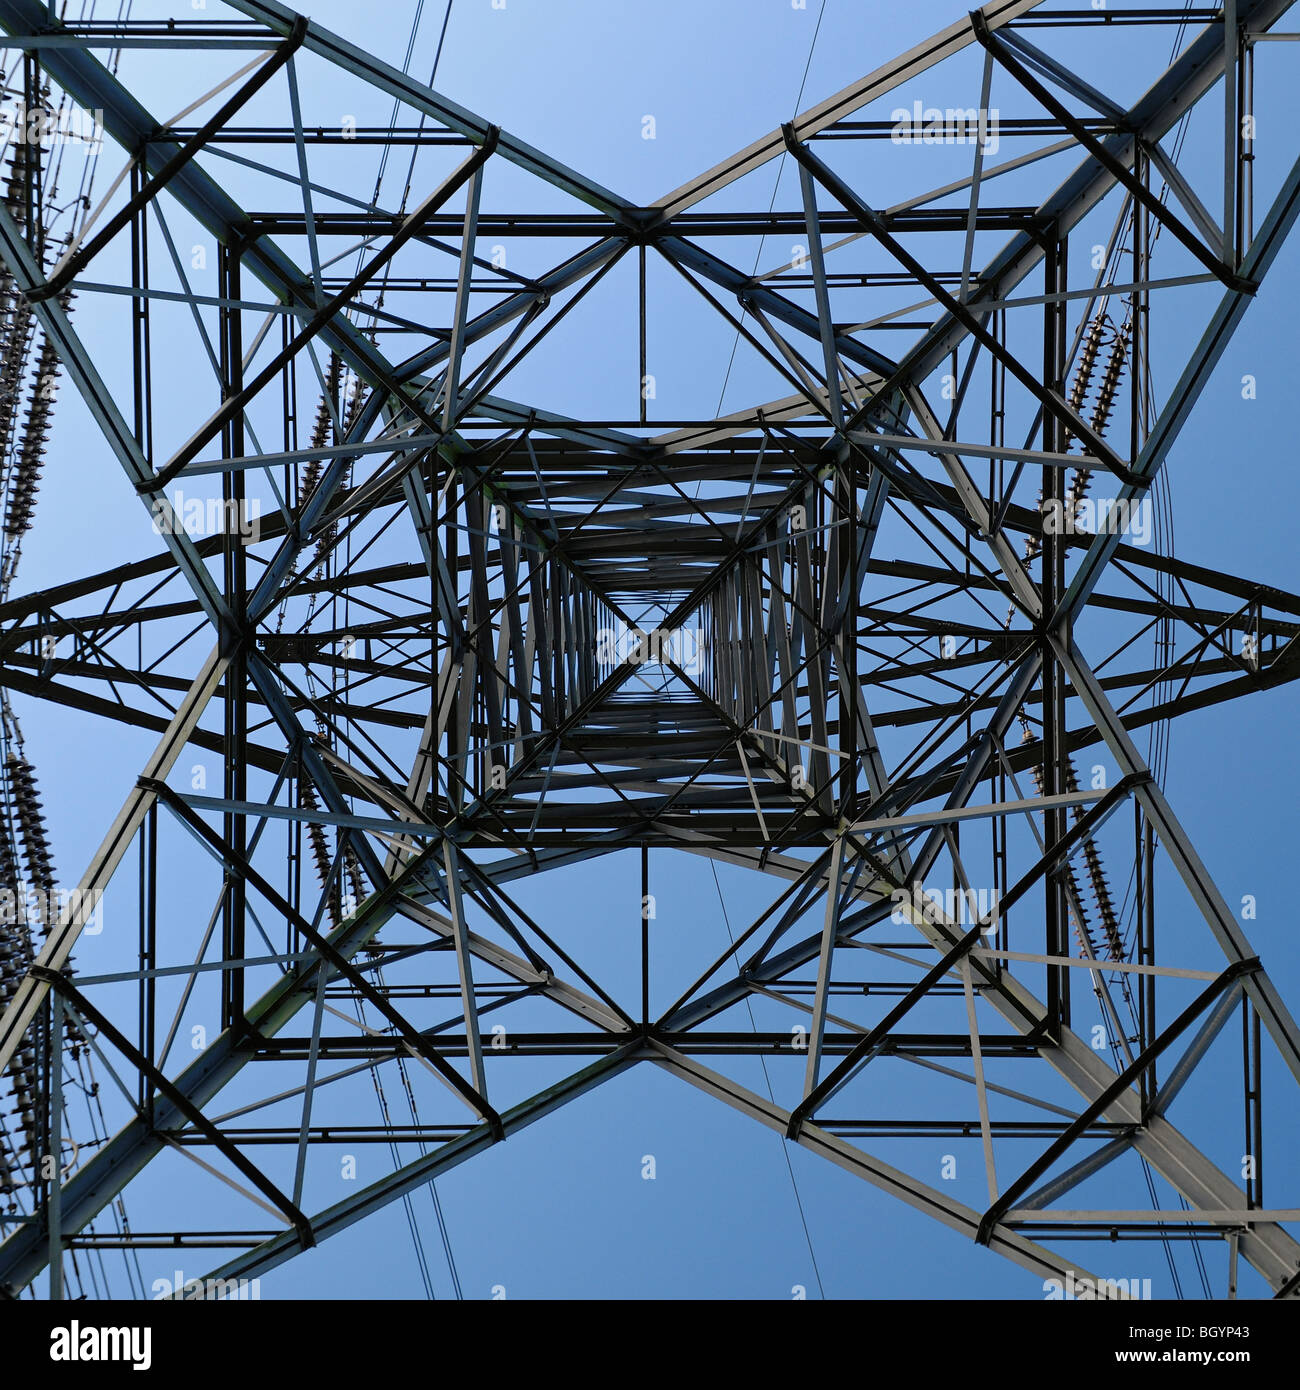 Electricity Pylon Low Angle View From Below - Stock Image